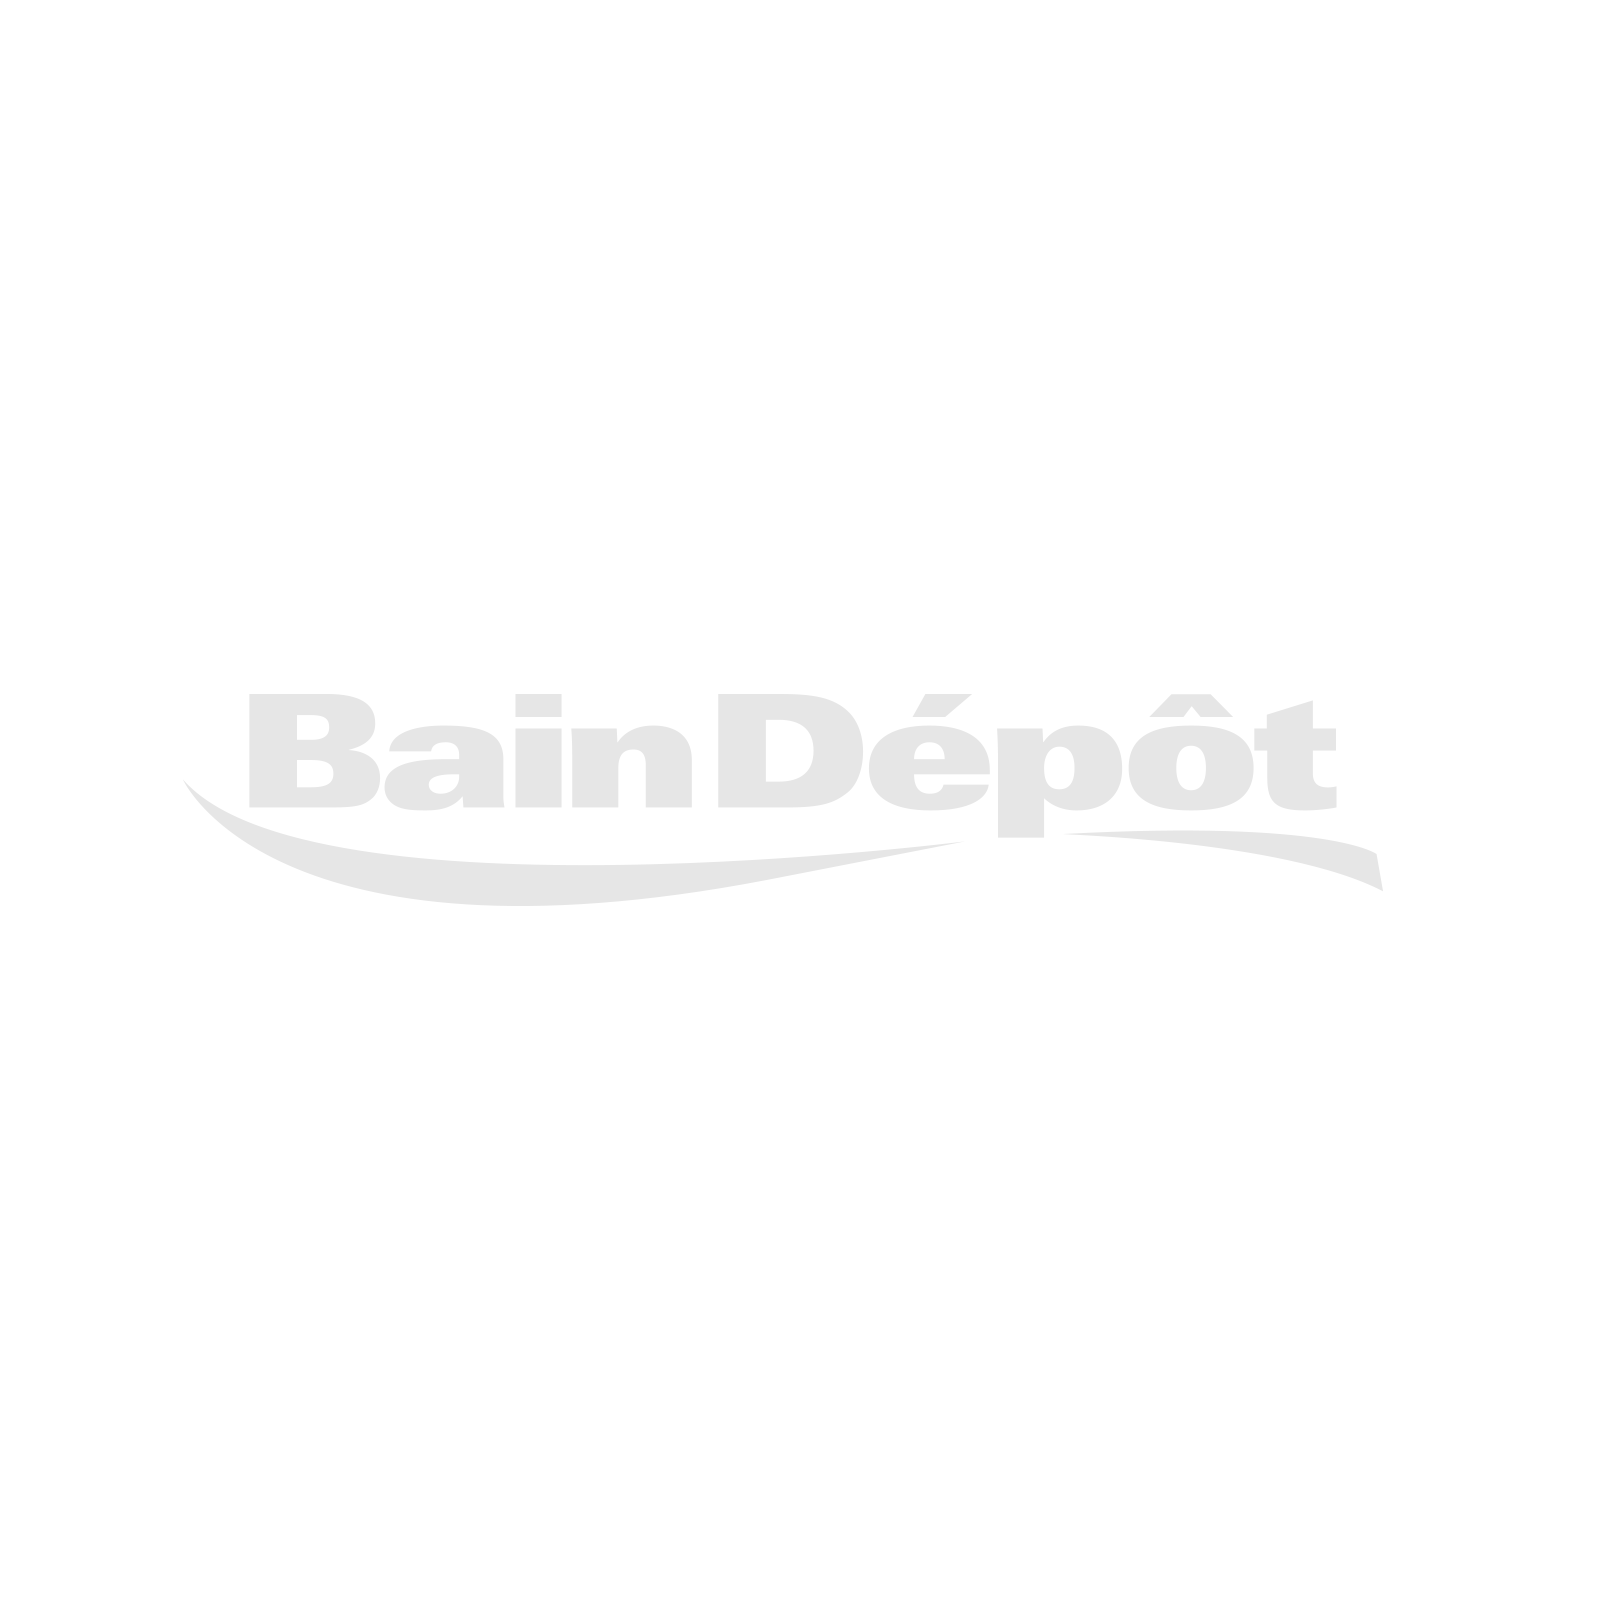 FORMA stainless steel over-door expandable towel bar